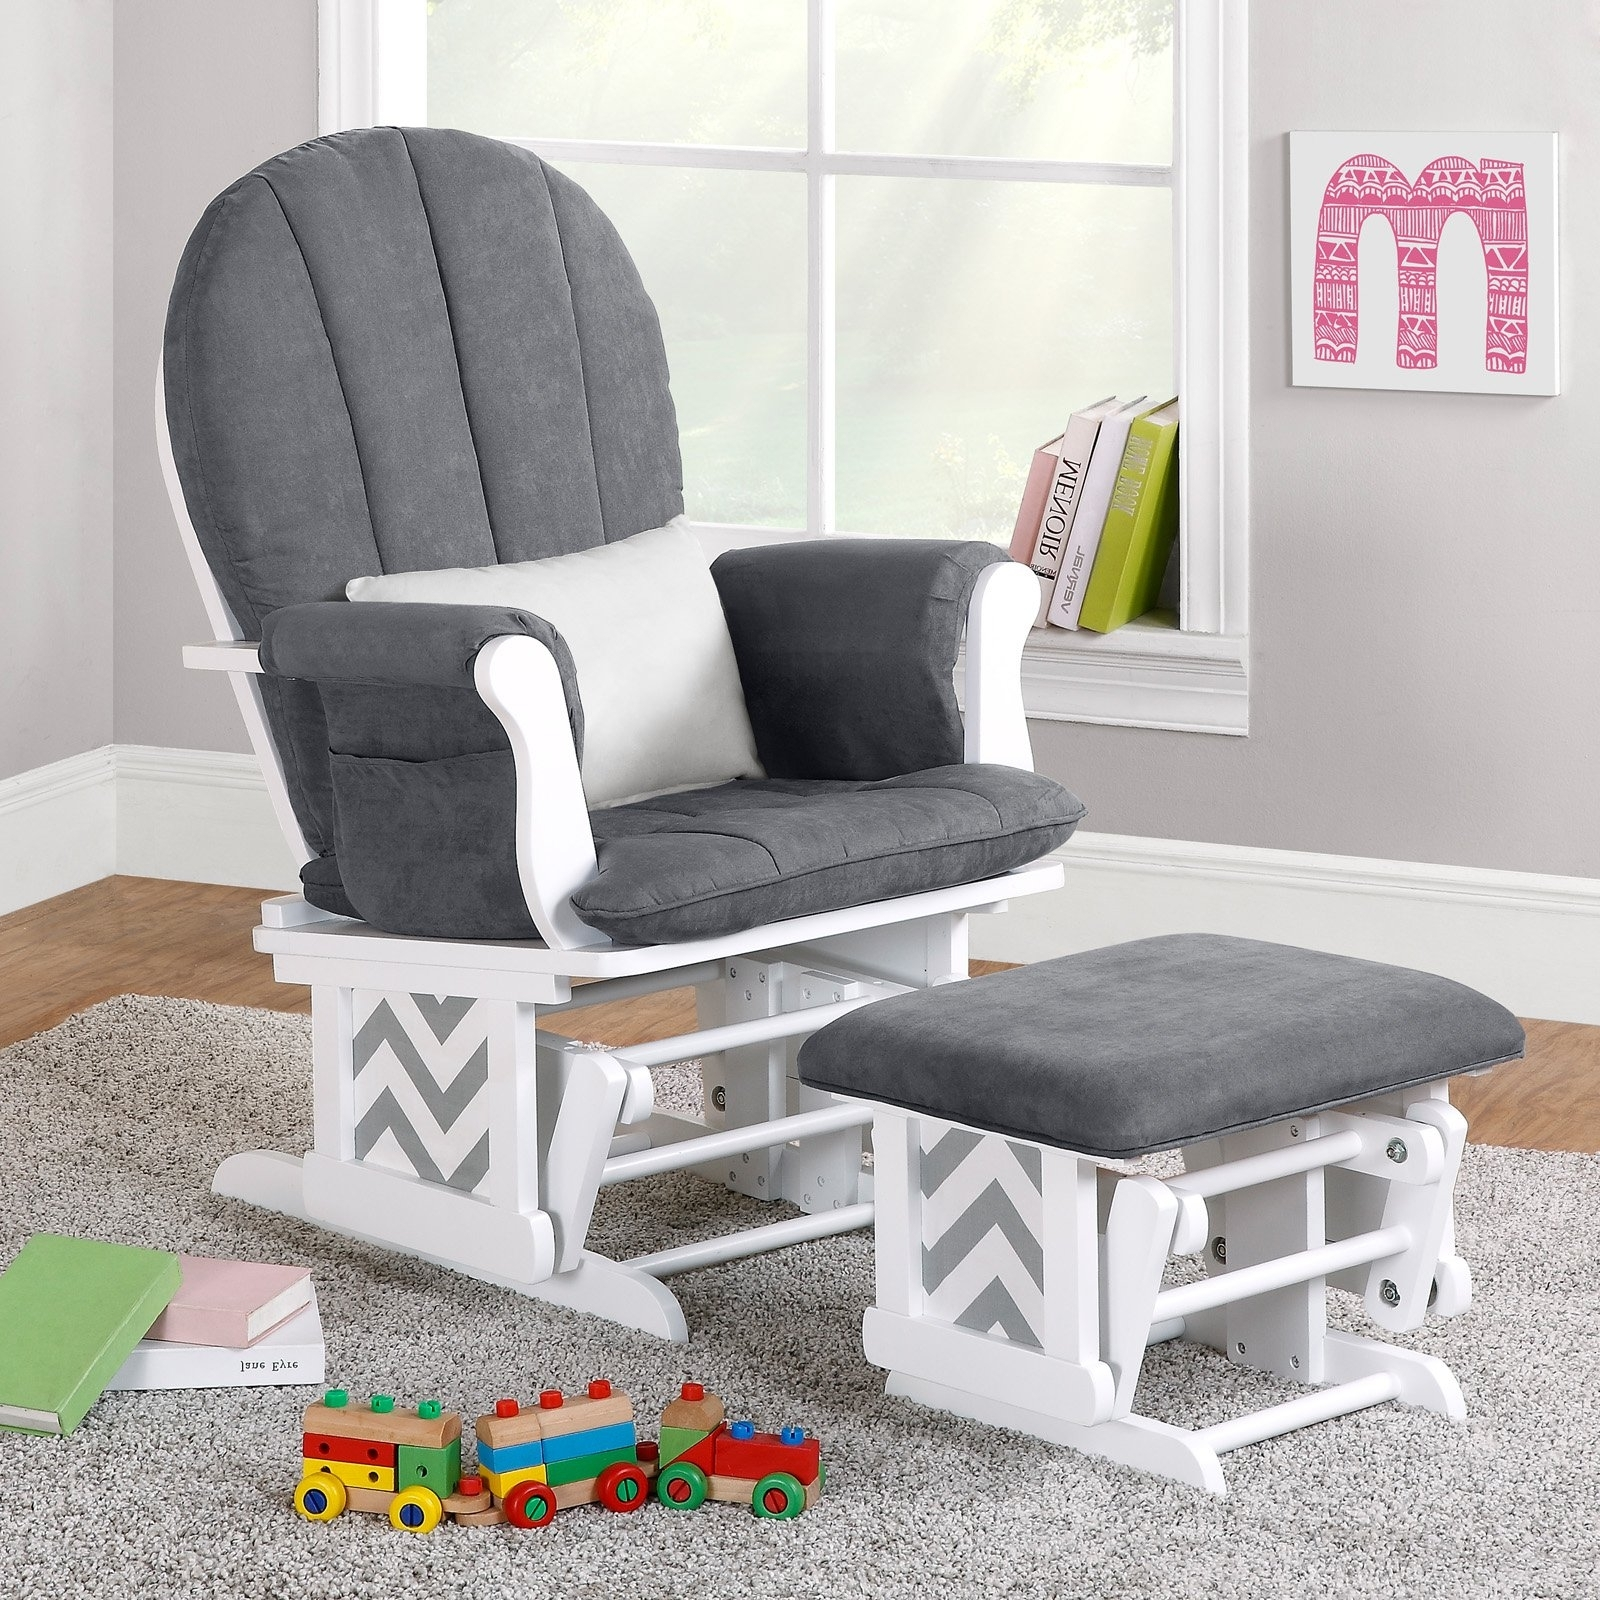 Widely Used Rocking Chairs For Nursery Regarding Furniture: Nursery Classicsklaussner Landis Swivel Glider Rocker (View 15 of 15)